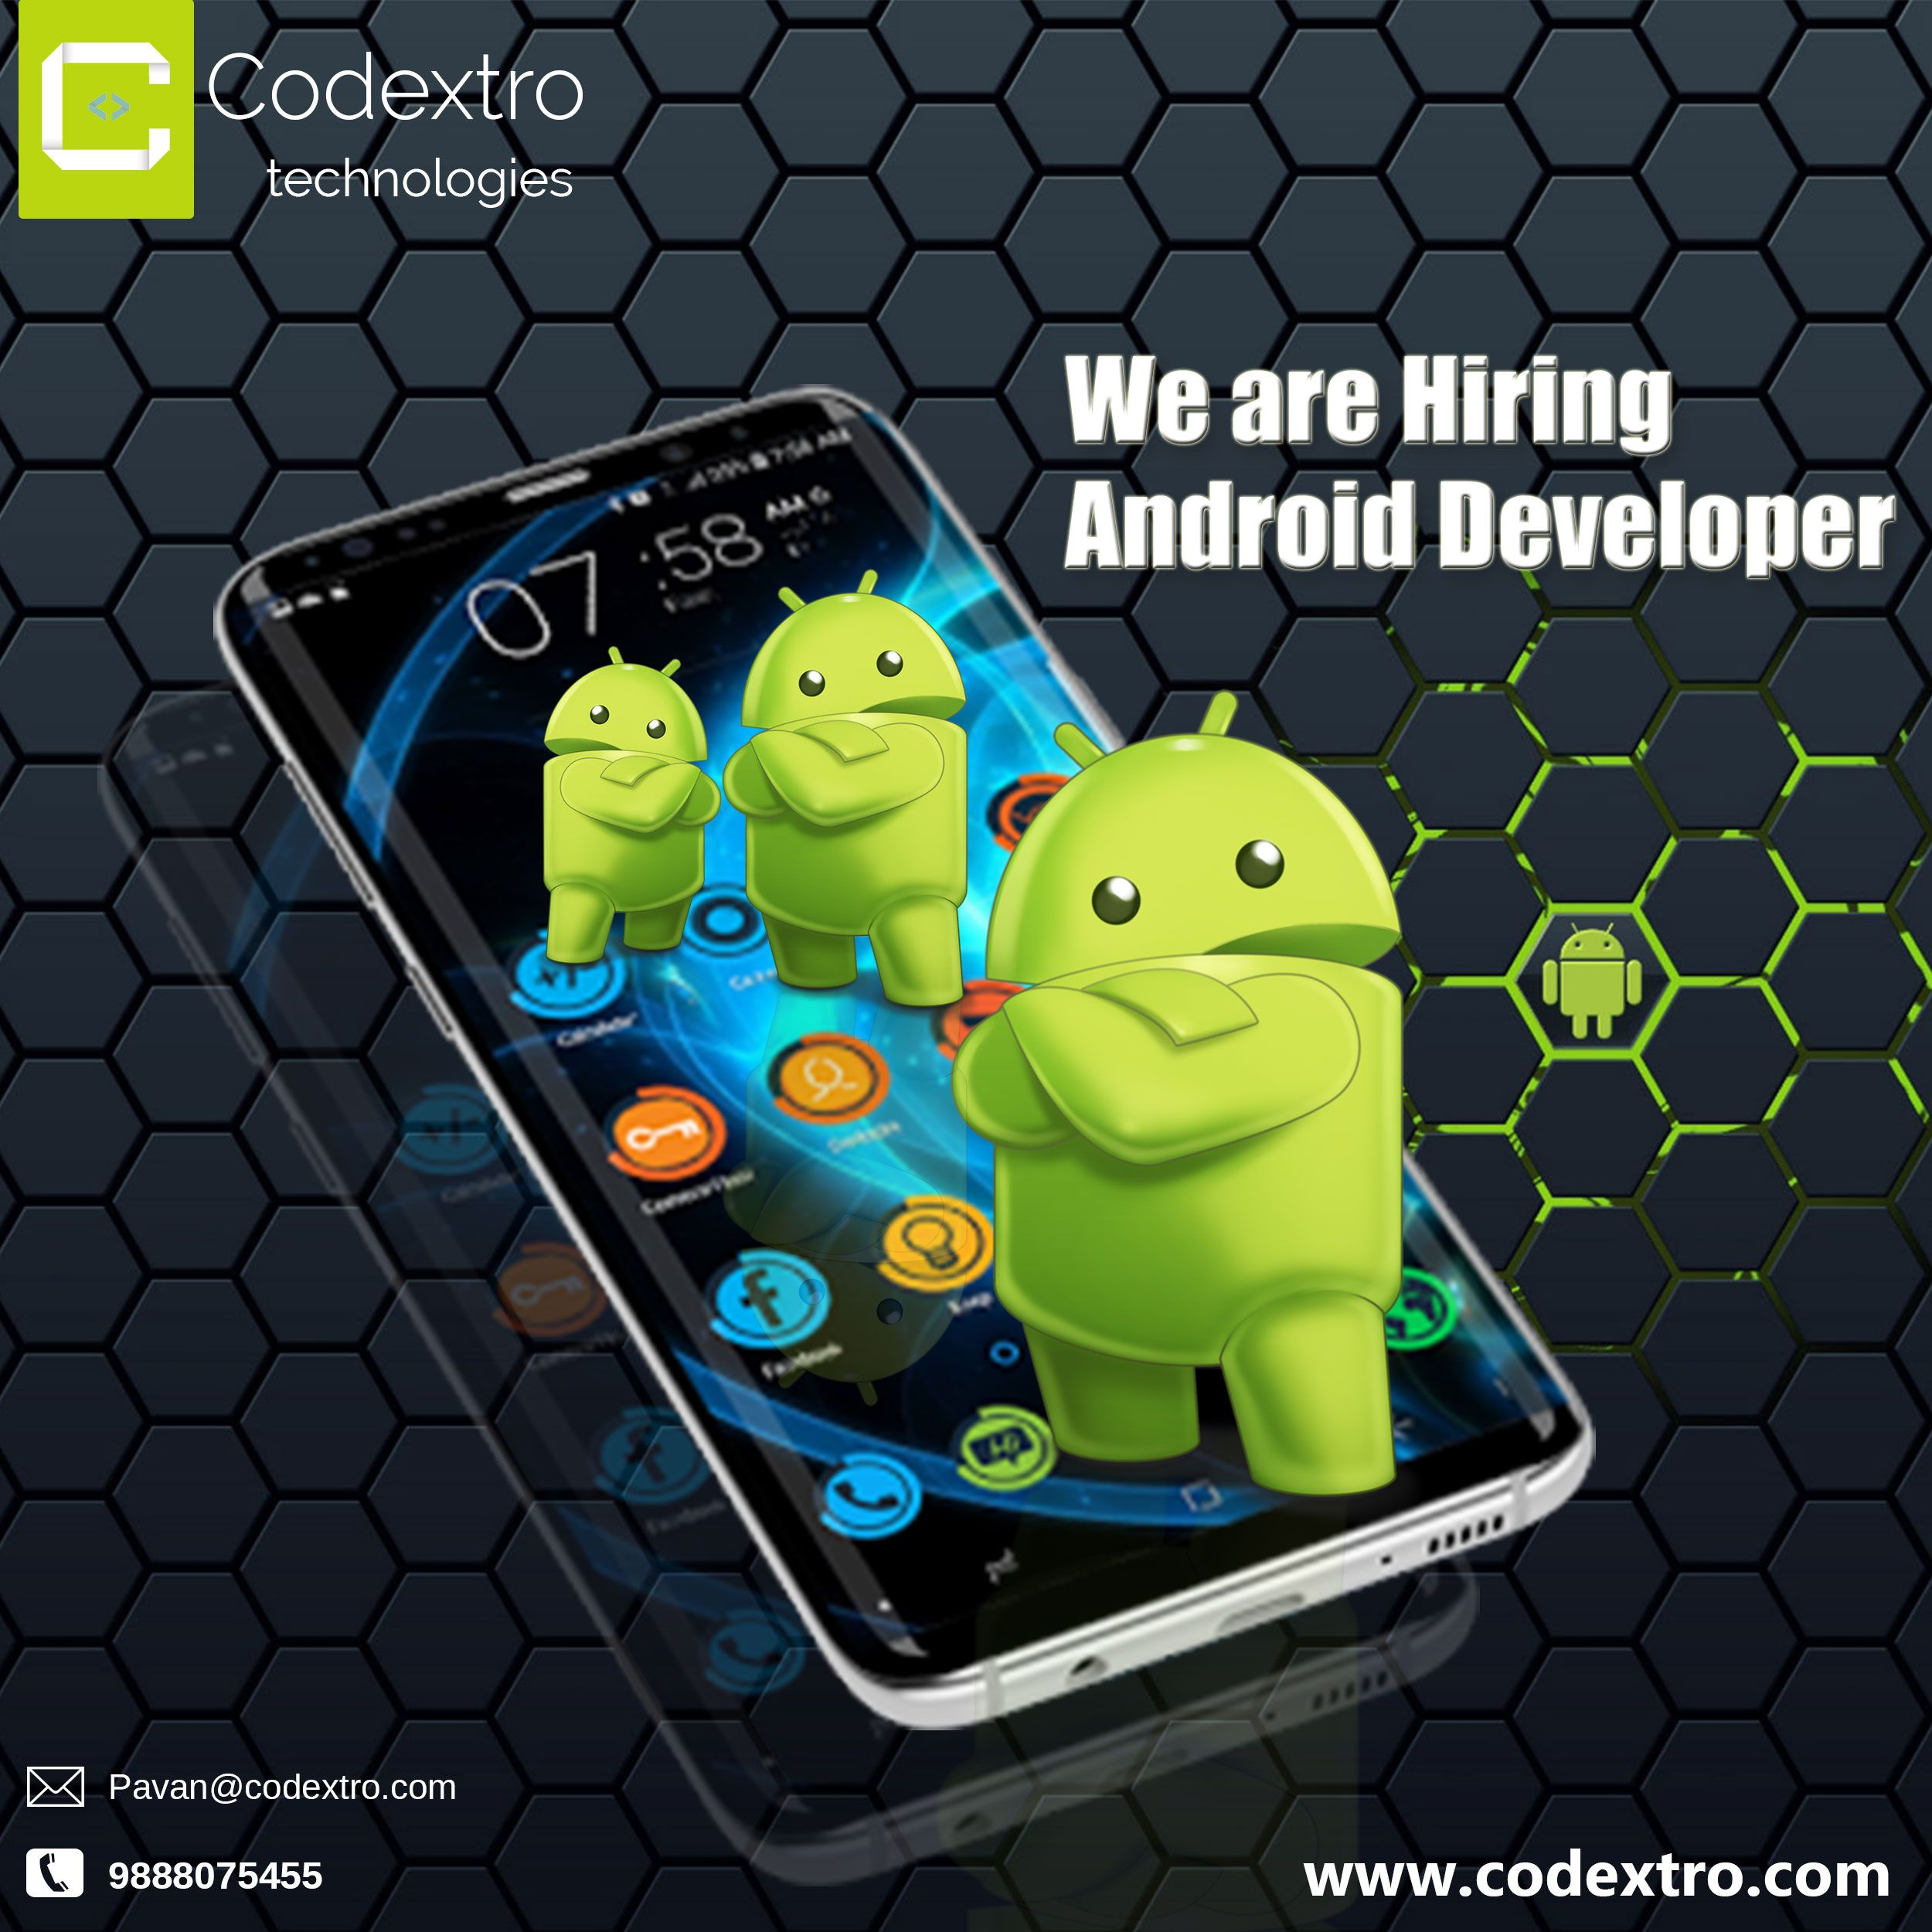 We are Hiring Android Developer 1.5 to 2 Yr Exp. Salary